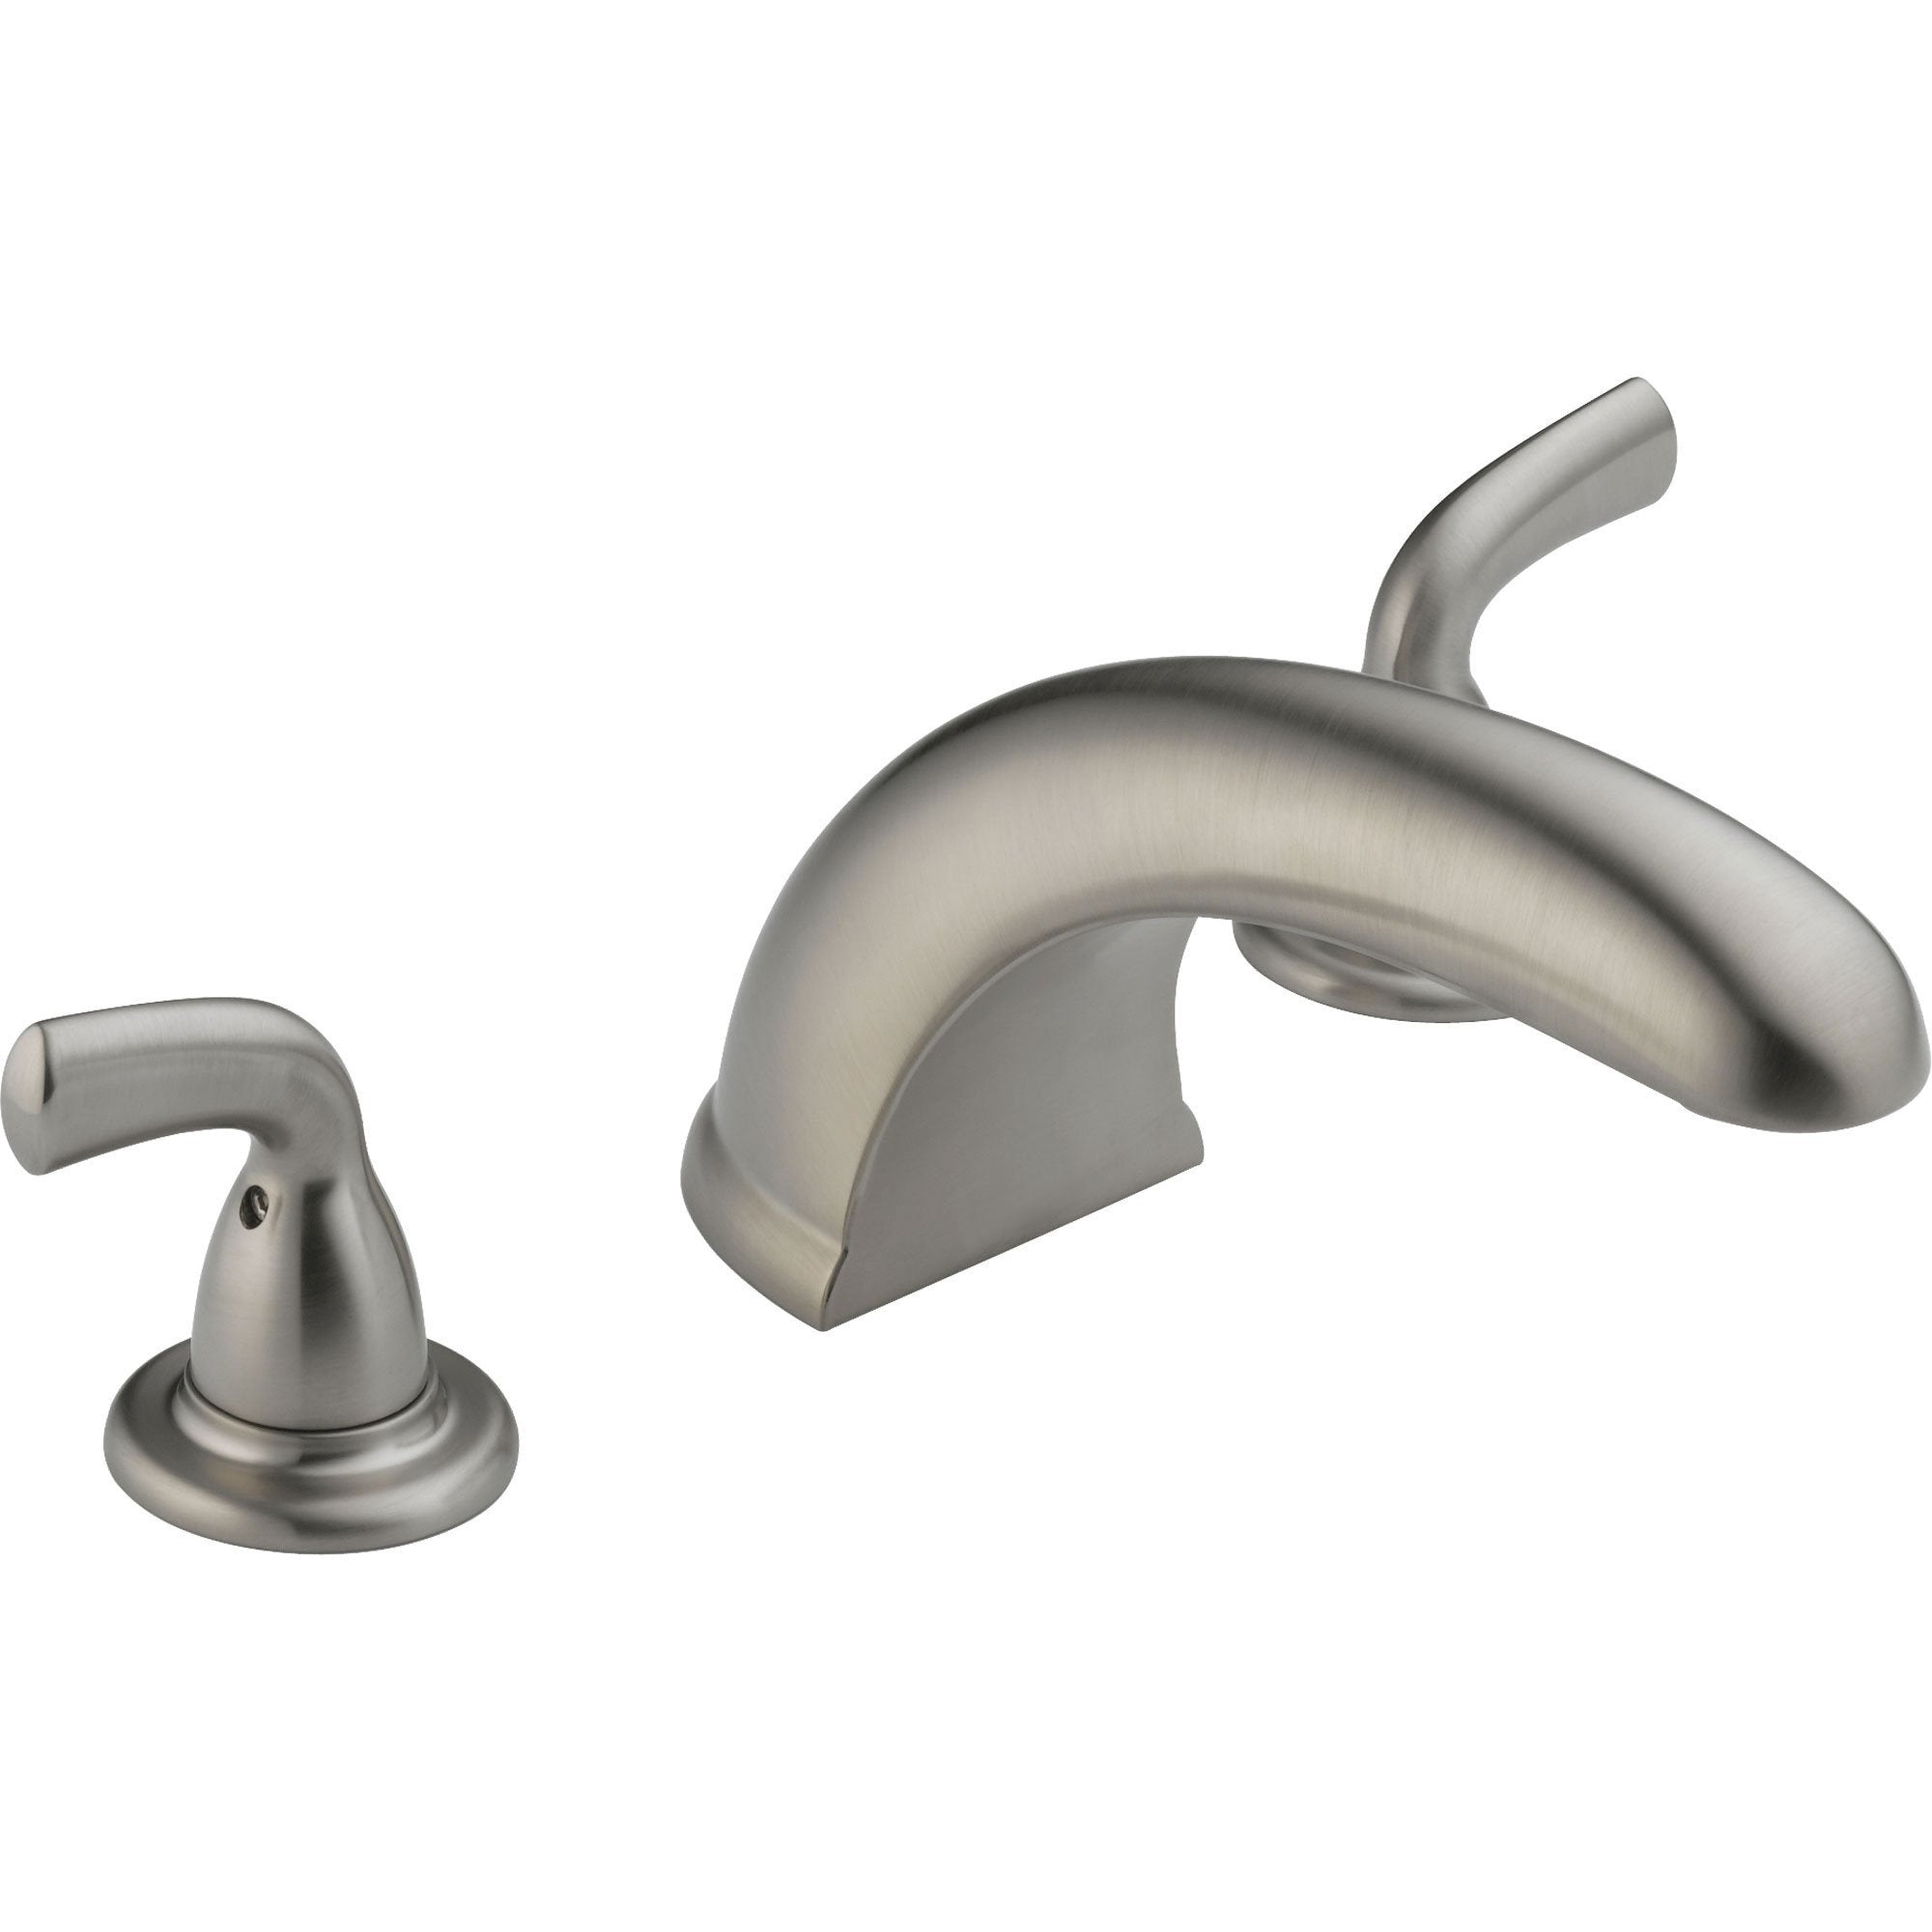 Delta Stainless Steel Finish Widespread Roman Tub Filler Faucet Trim Kit 550068